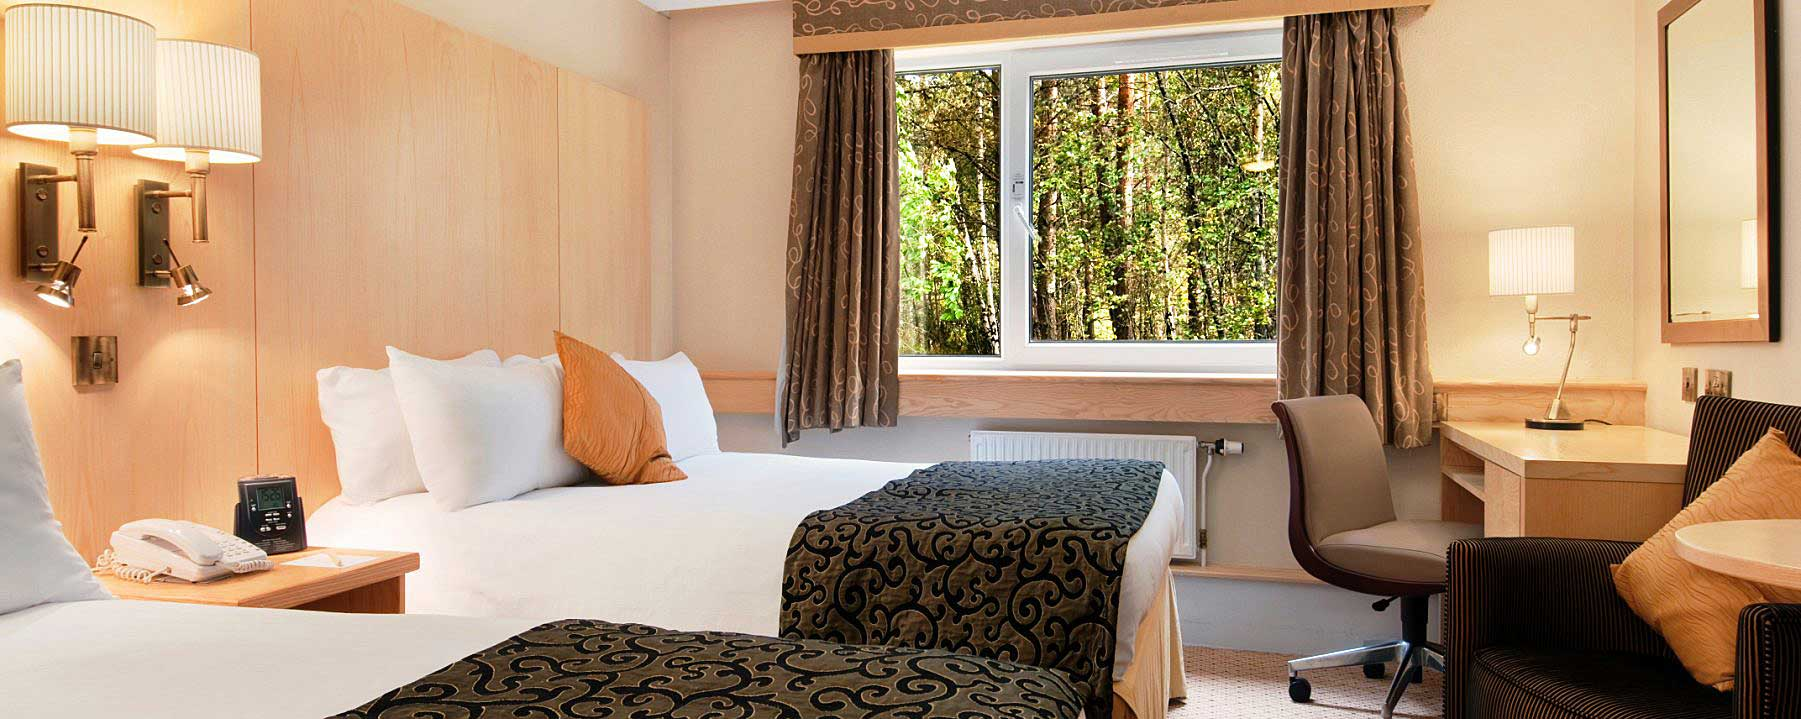 Accommodation in Aviemore